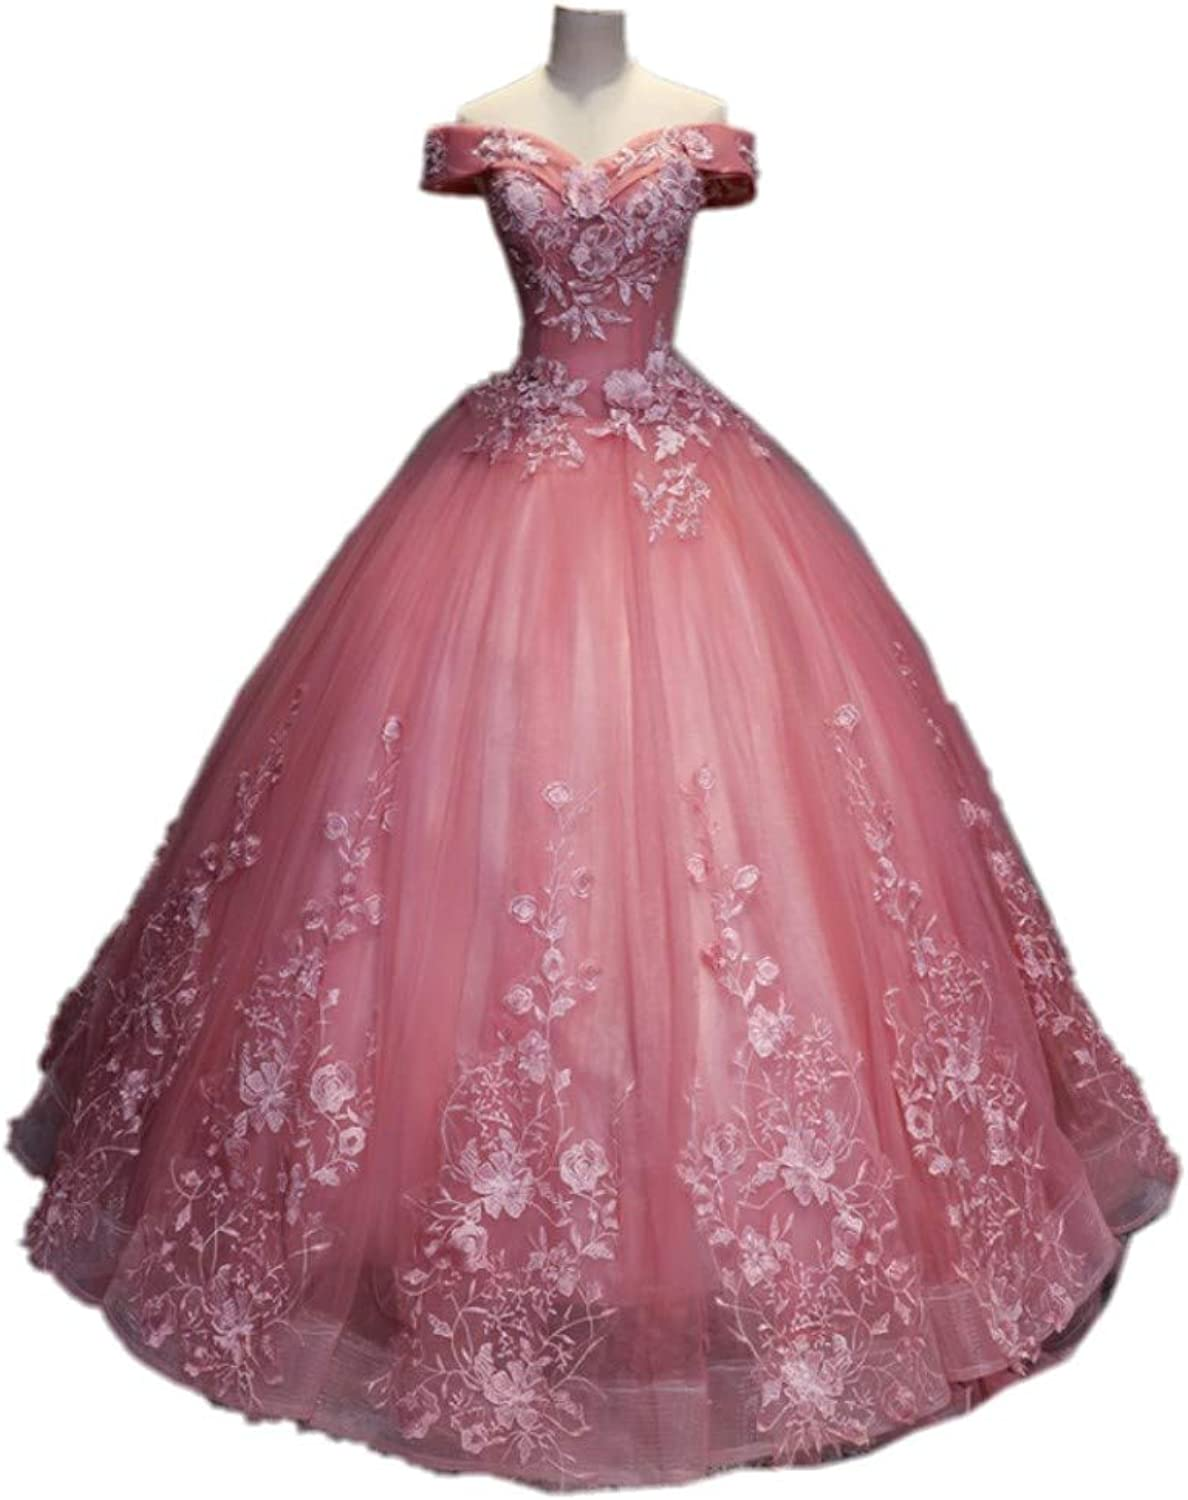 Darcy74Dulles Women's Off The Shoulder Pink Quinceanera Dresses Ball Gowns Appliques Puffy Long Prom Gowns Dresses Plus Size